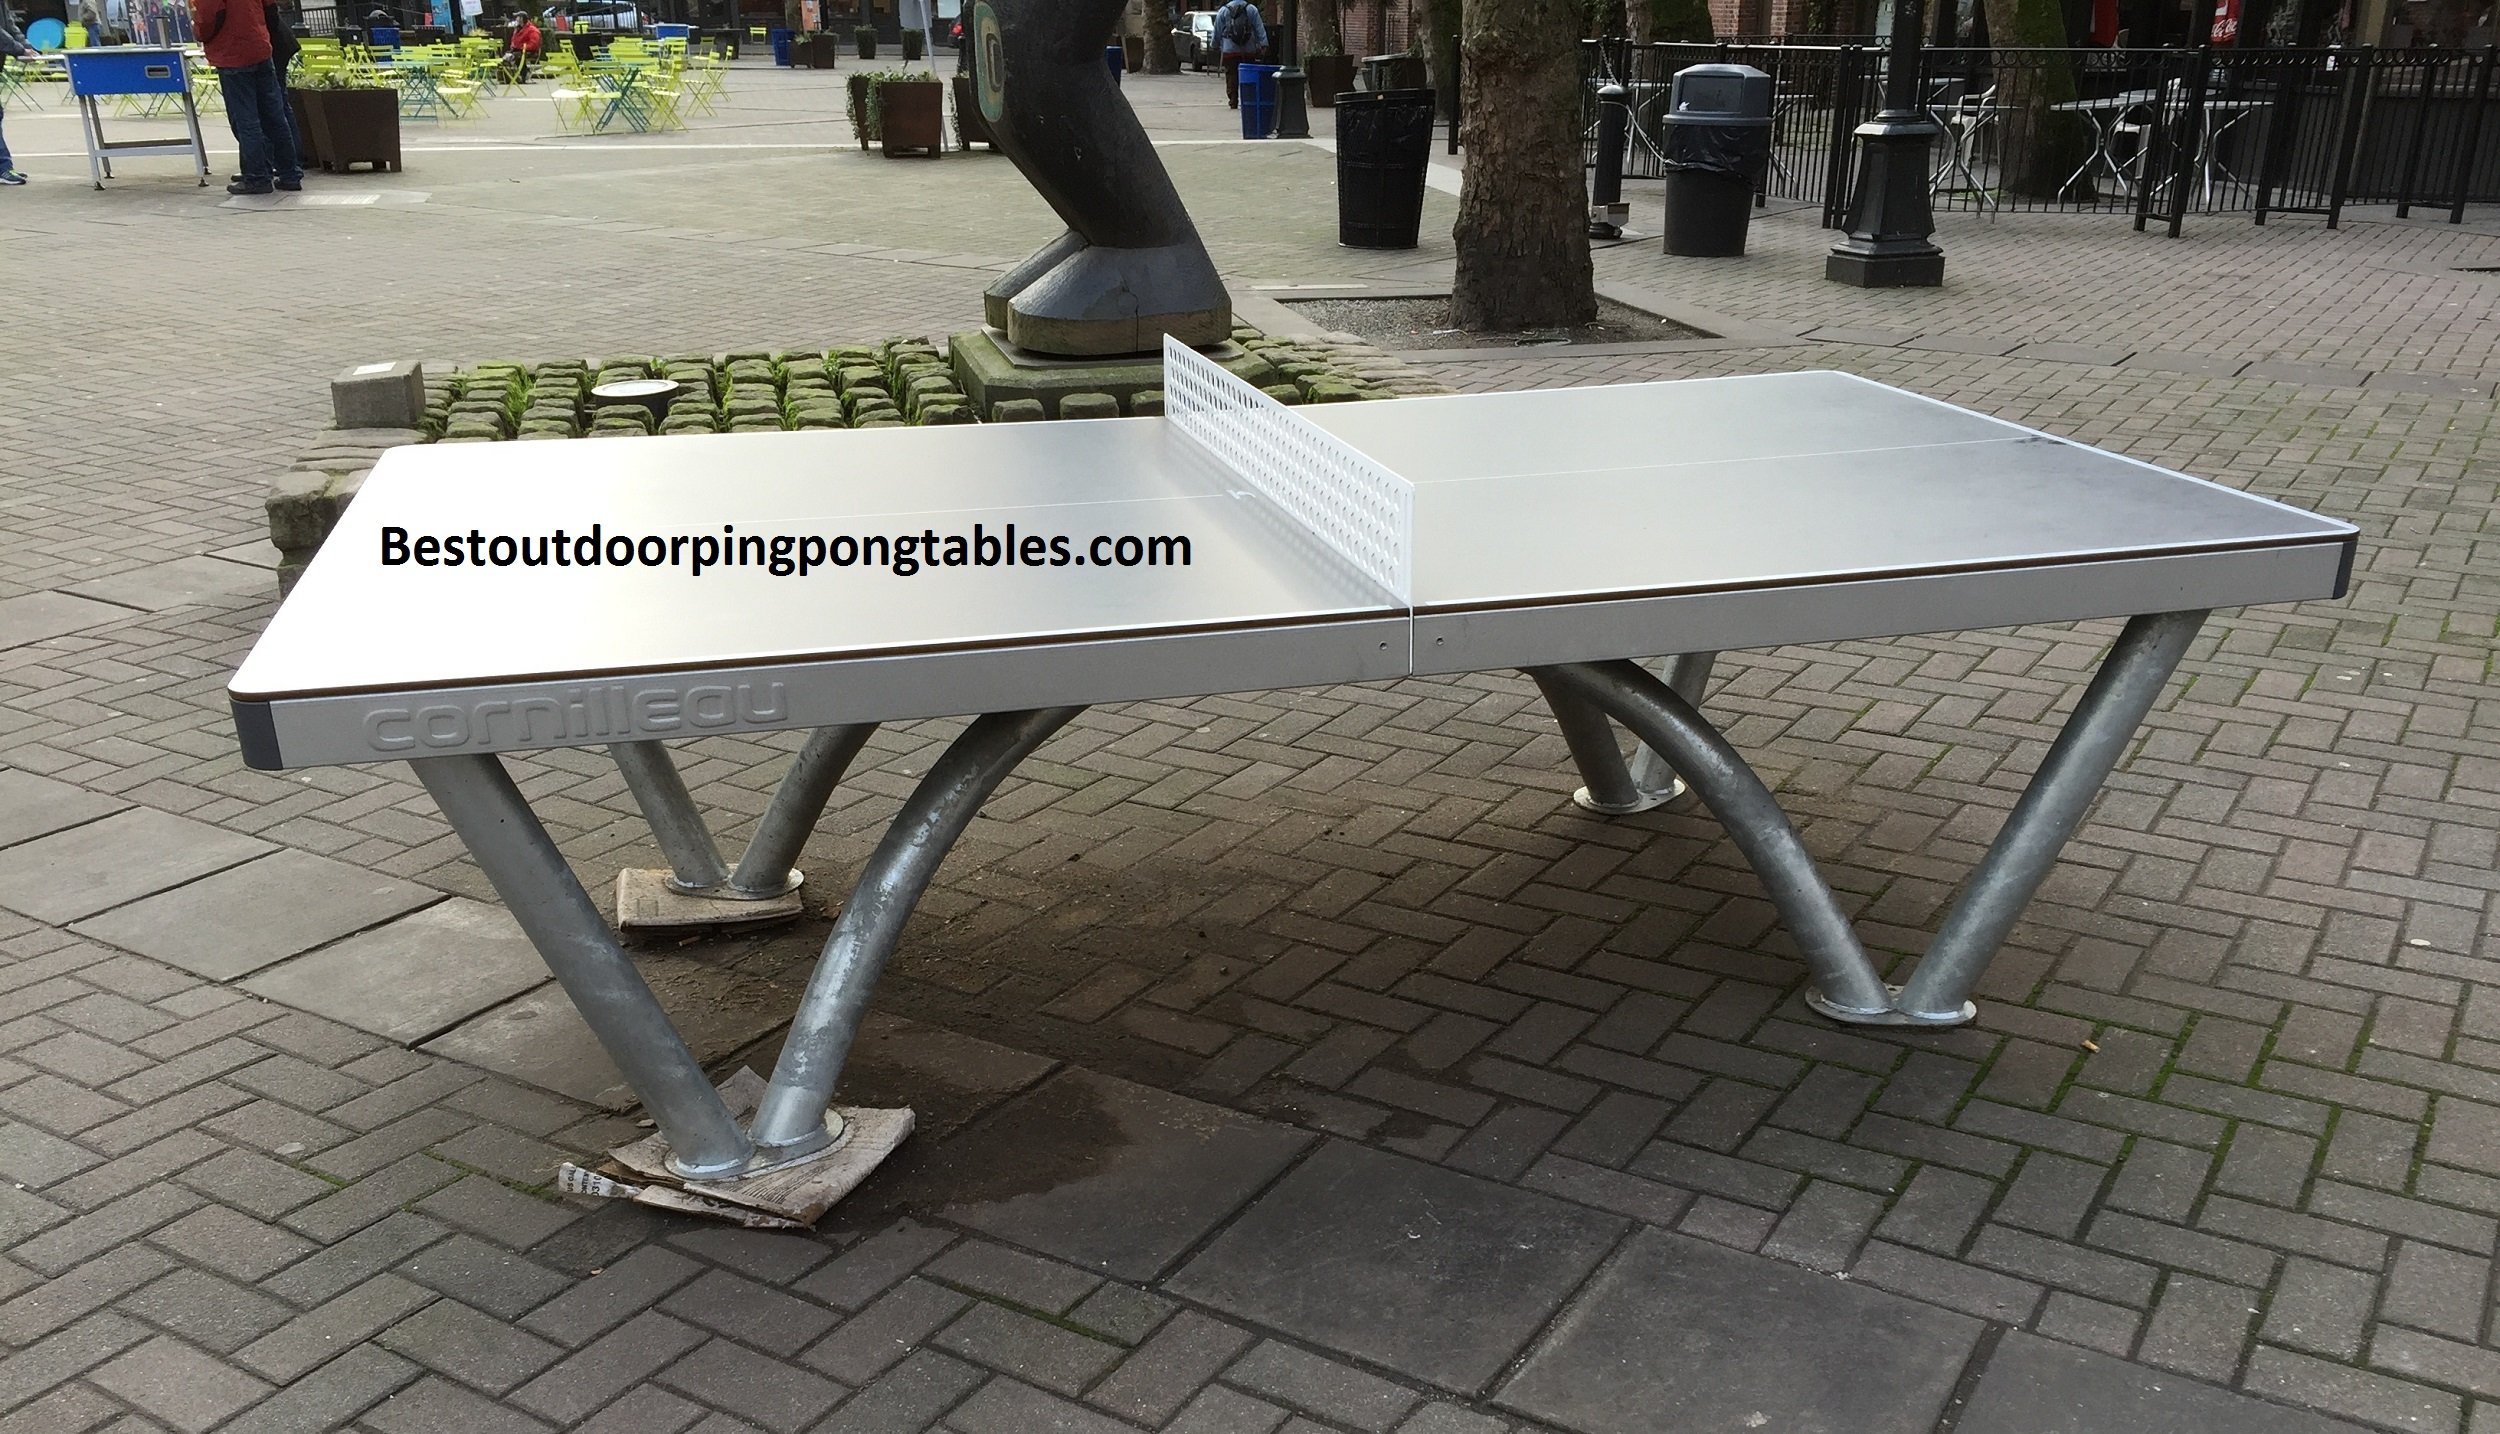 Cornilleau park outdoor table best outdoor ping pong tables - Table de ping pong occasion cornilleau ...